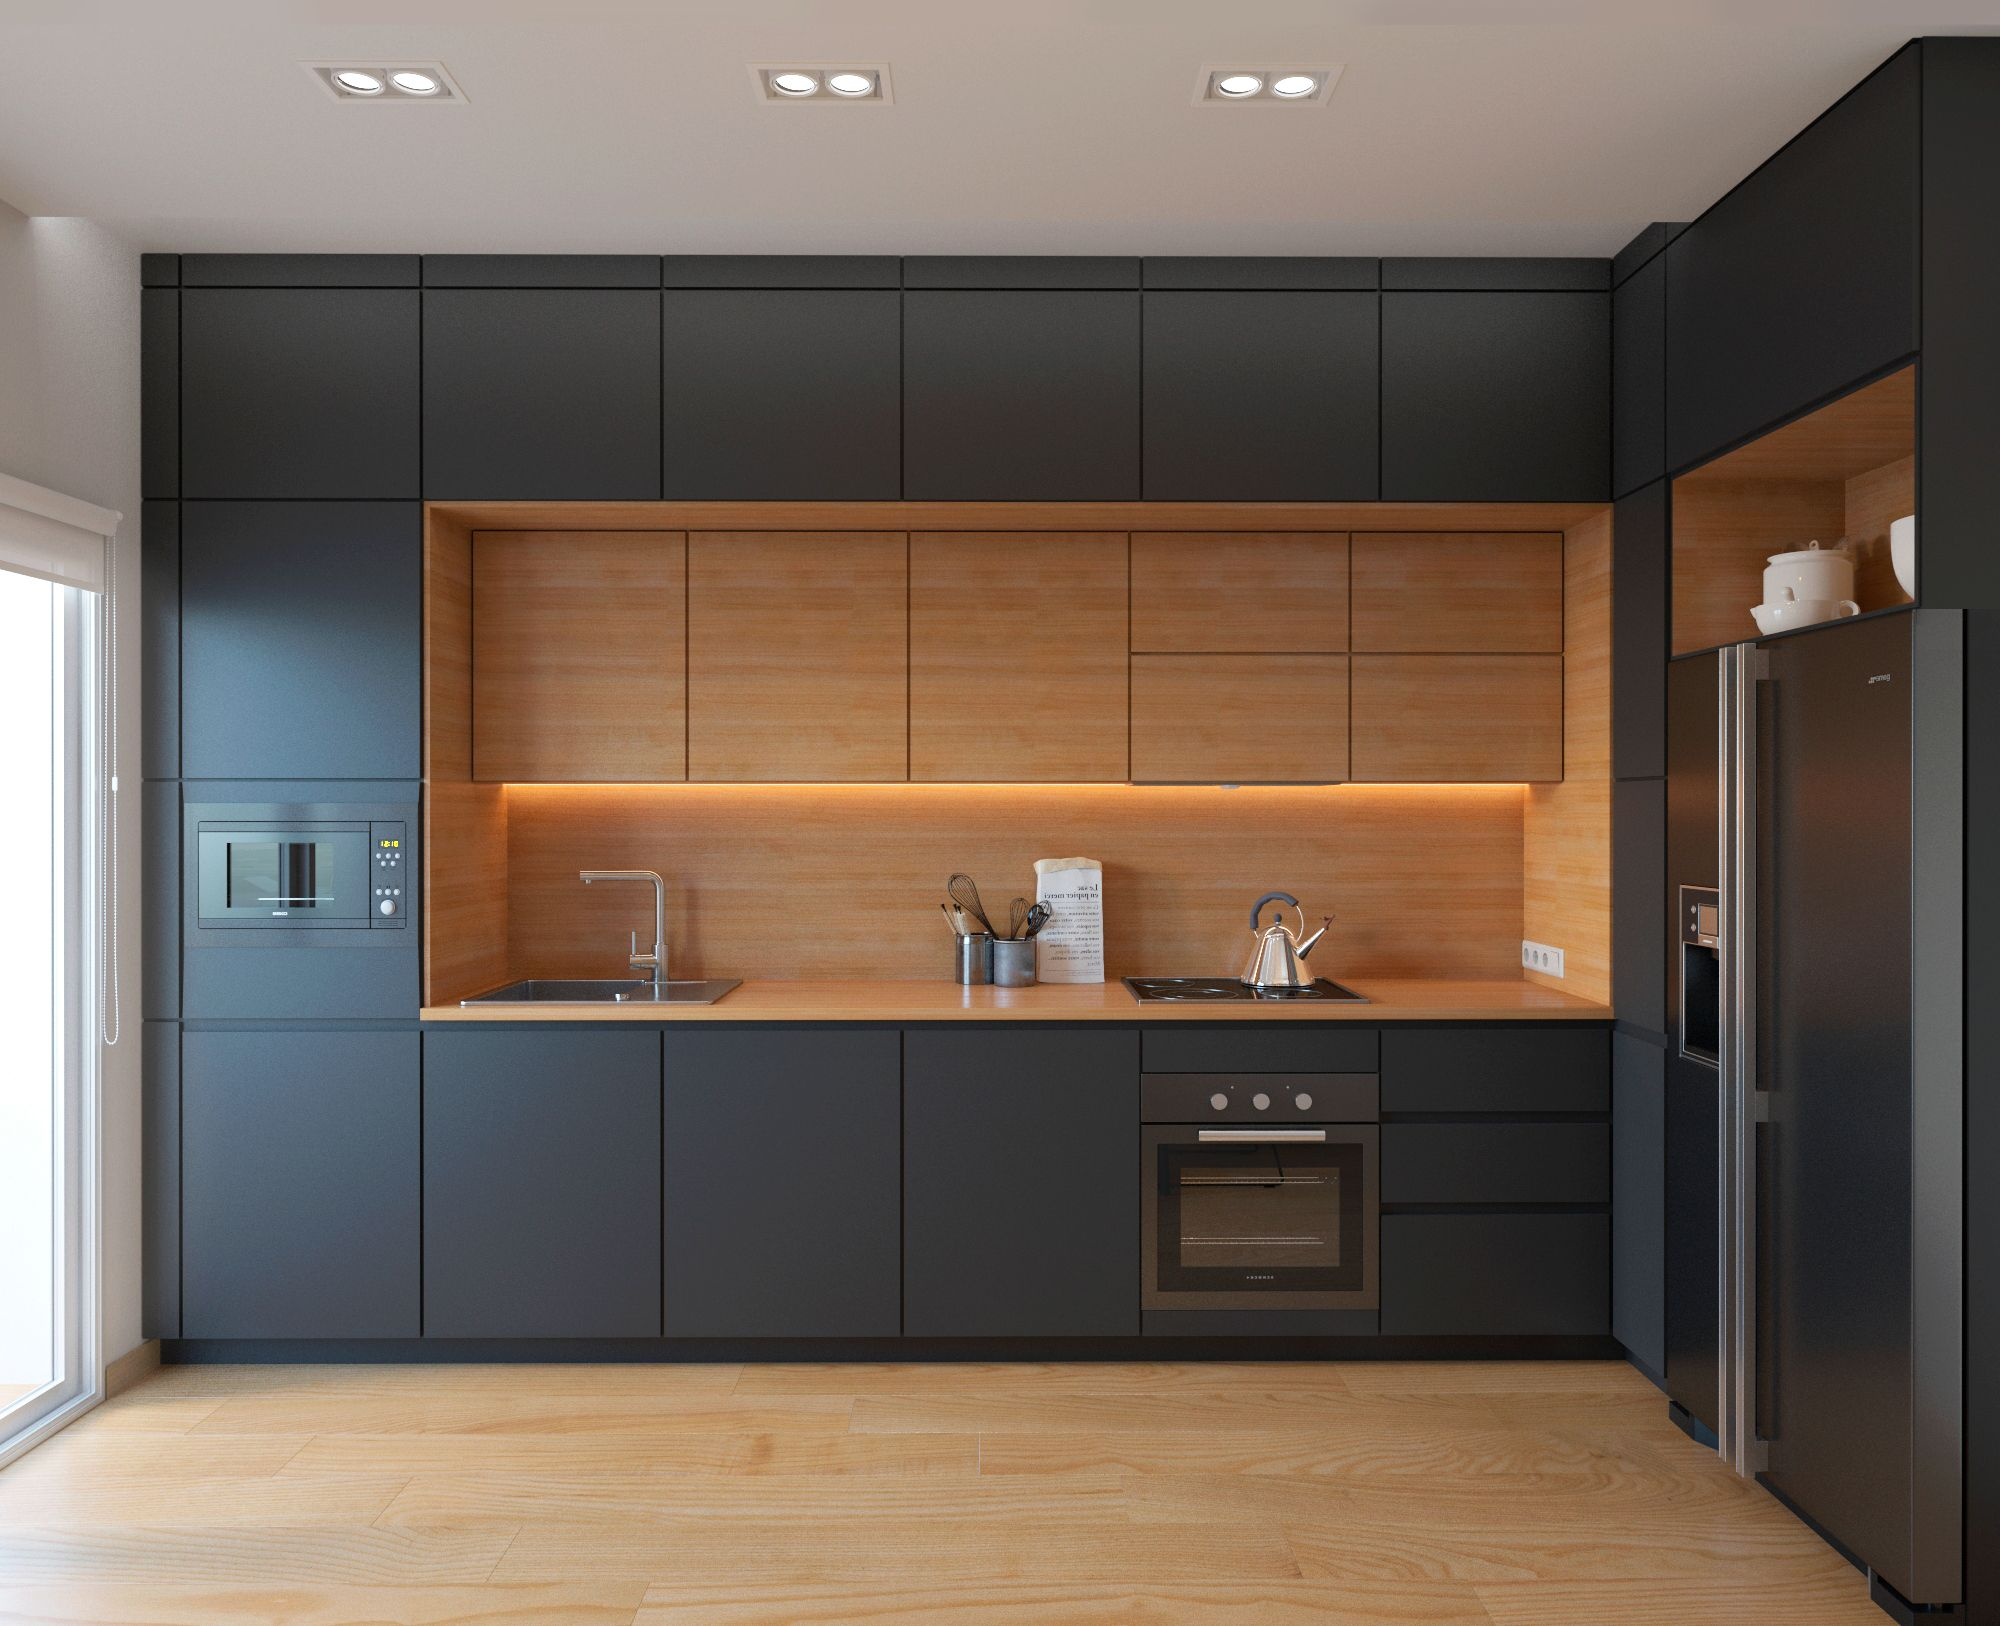 Design Kitchen COCINA Pinterest Design Galleries And Natural - Designing a kitchen